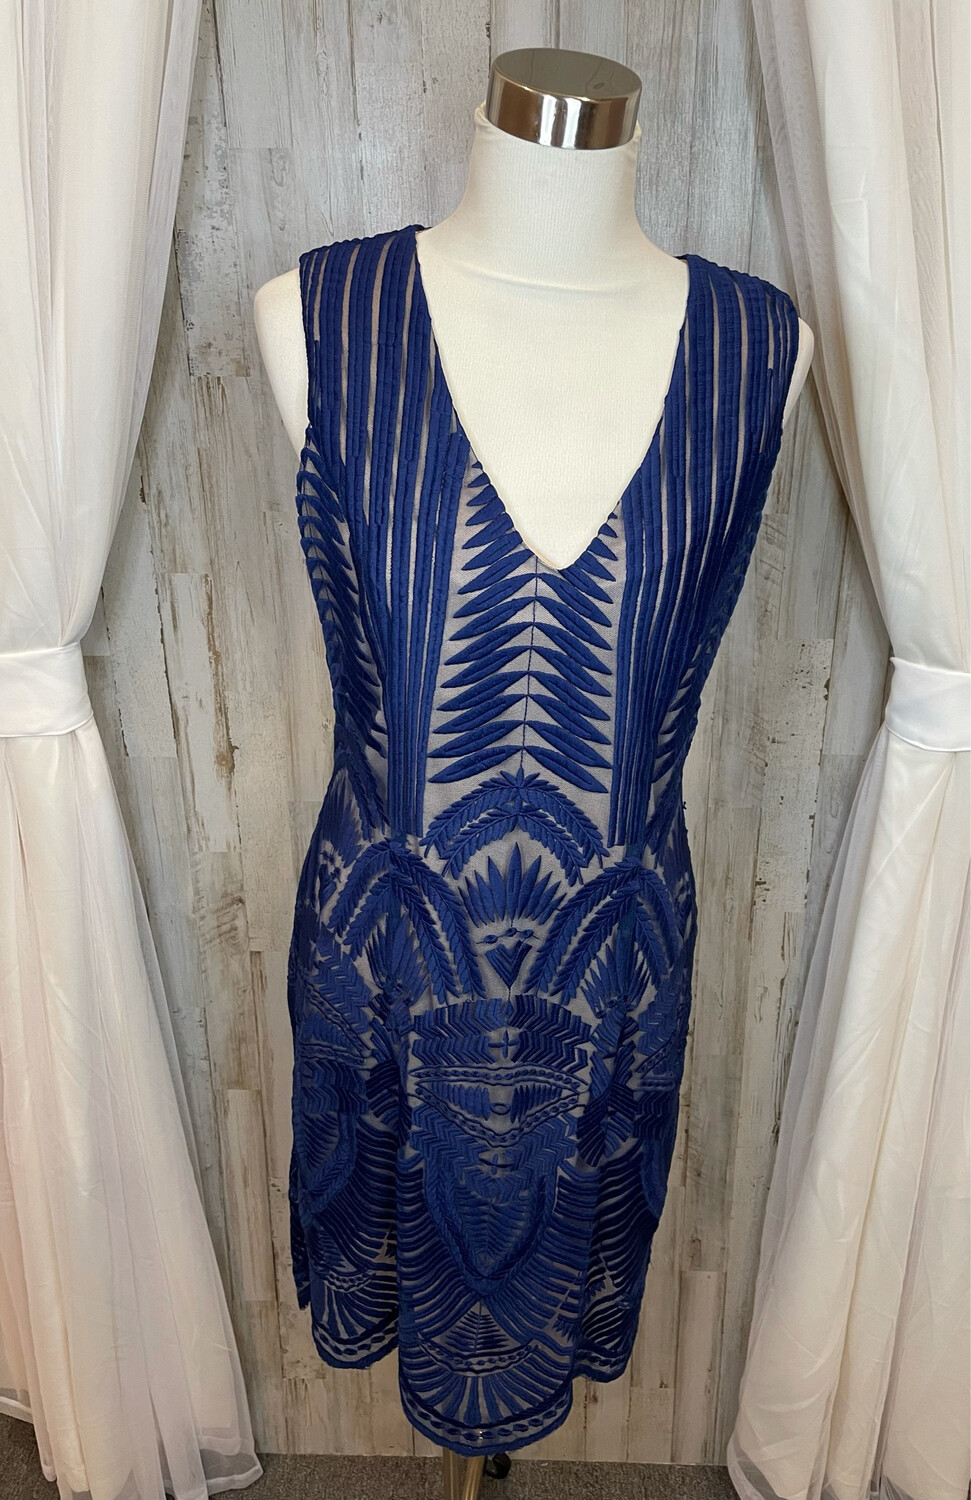 A.B.S. Collection Blue Embroidered Dress - Size 8